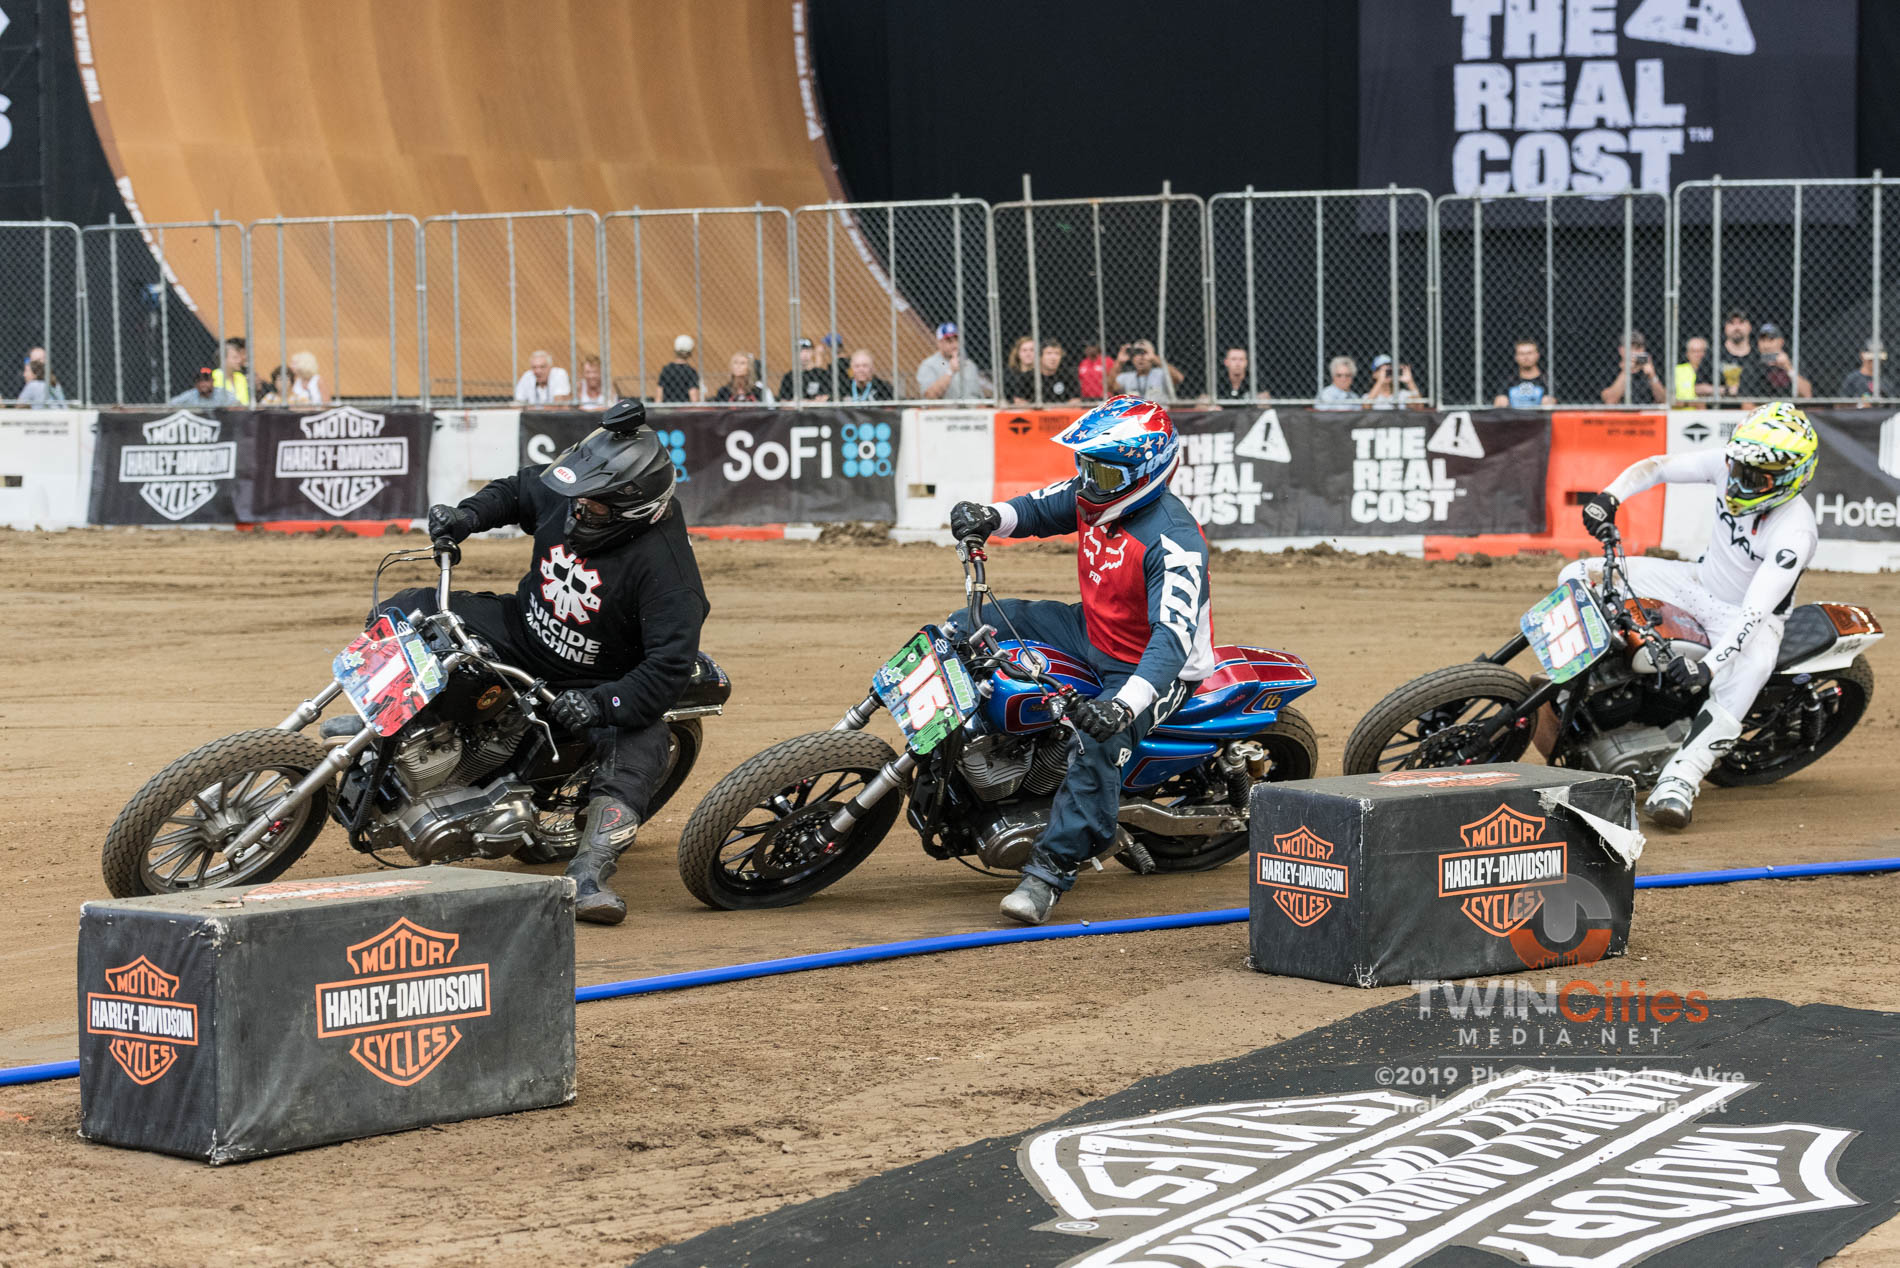 2019-X-Games-Day-4-Harley-Davidson-Hooligan-Racing-9